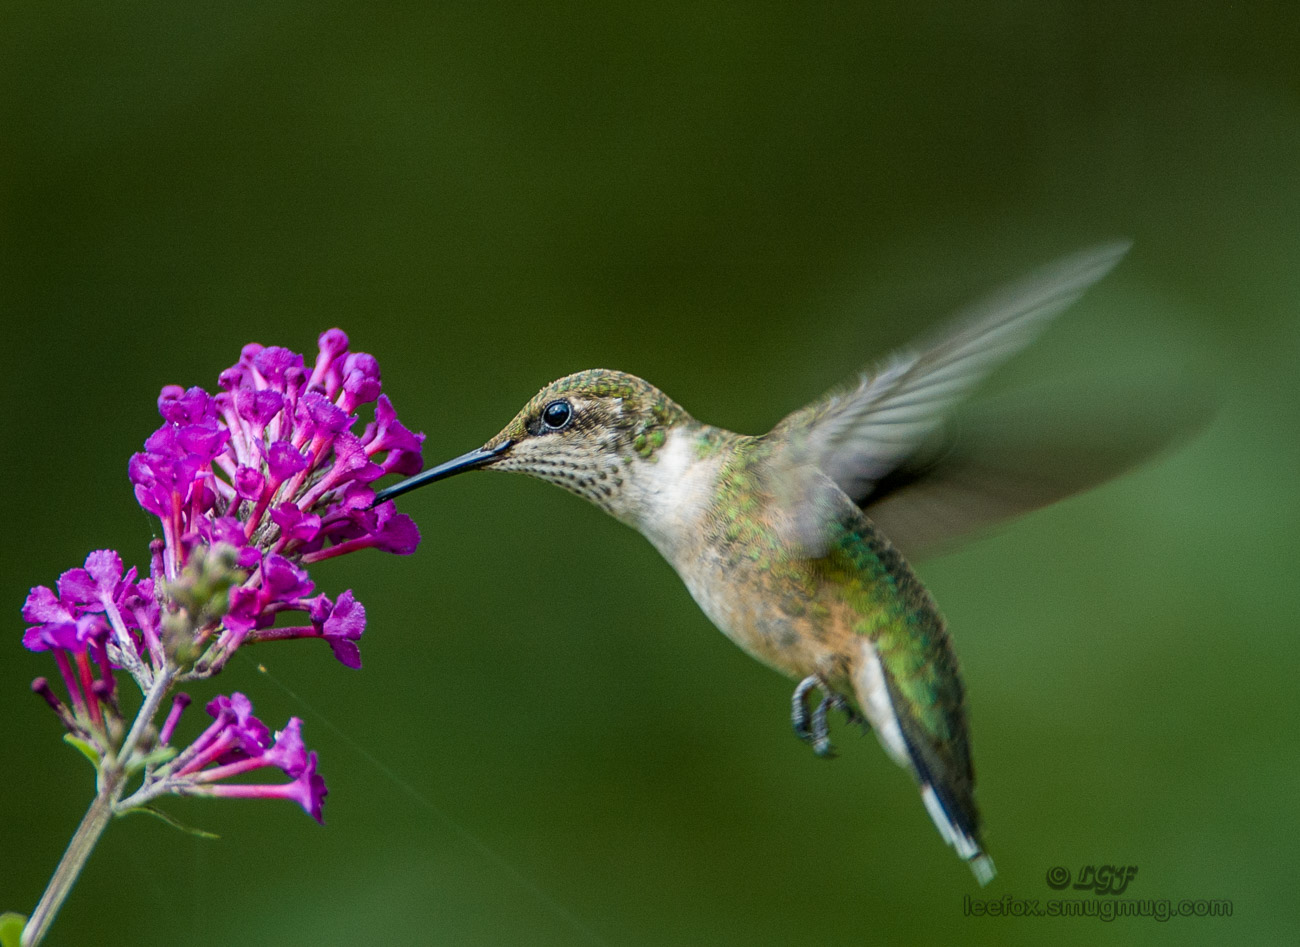 Ruby-throated hummingbird_DSC_0030.jpg